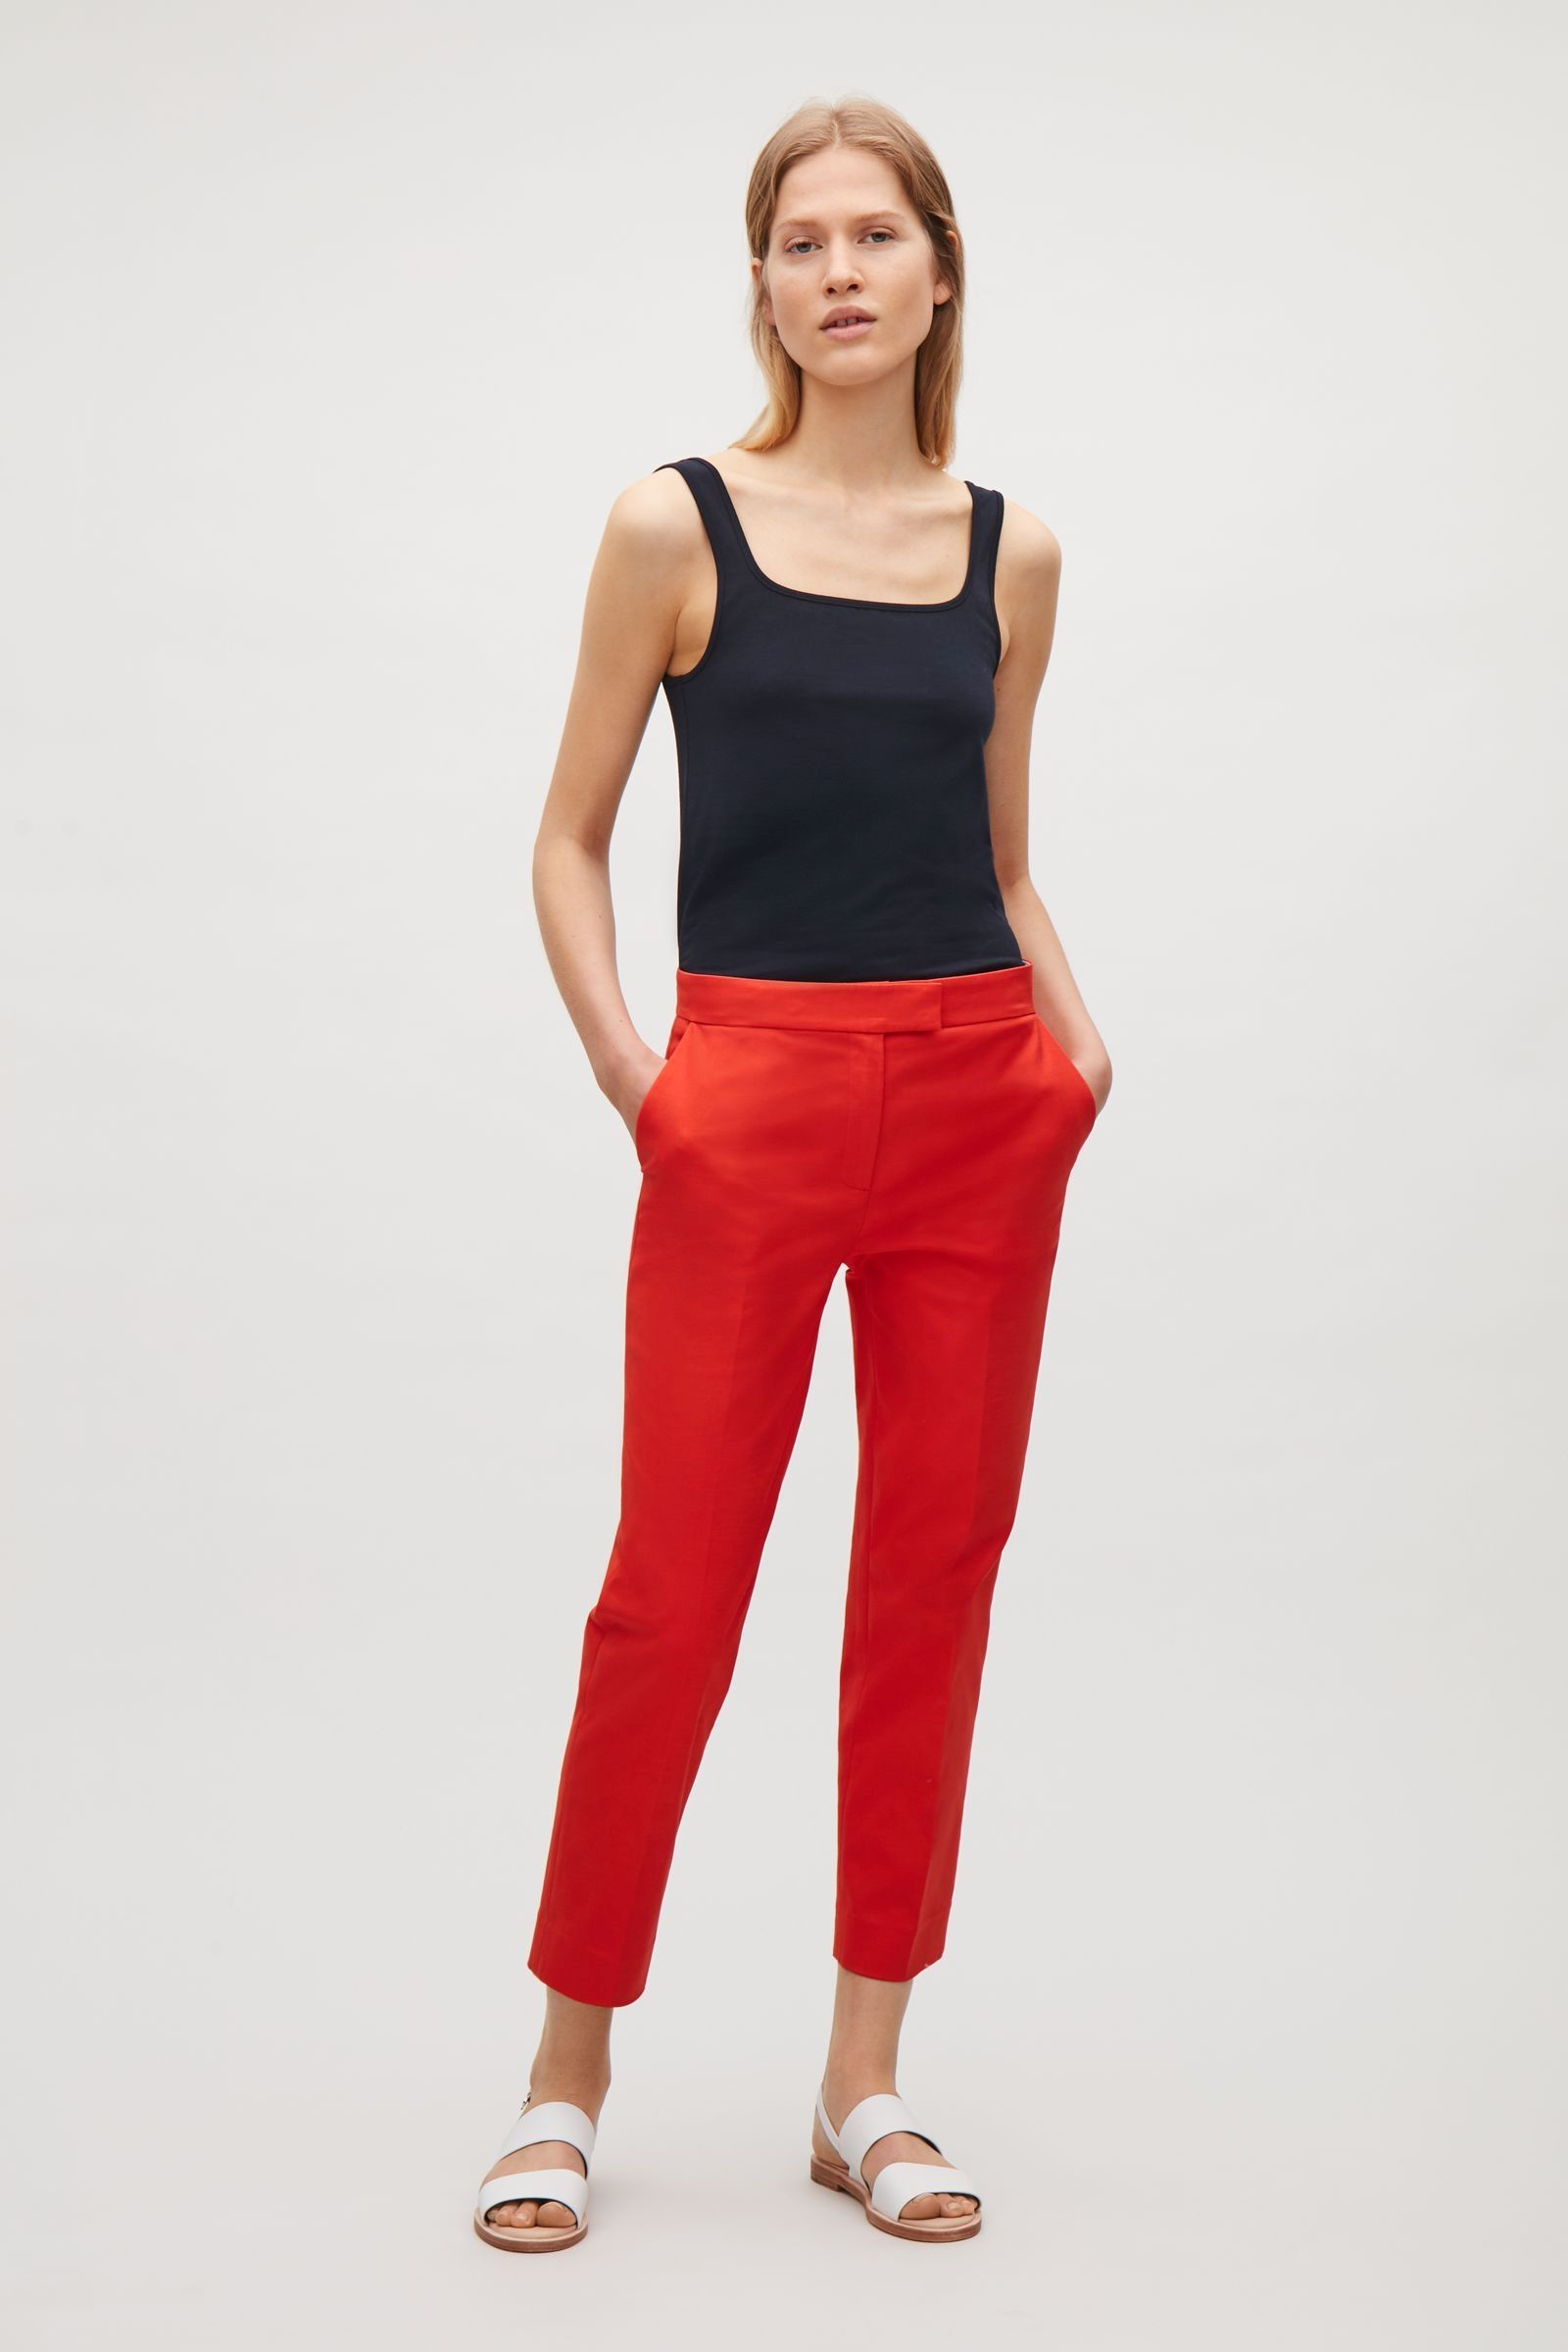 Pin by christine baker on vspteal slim fit trousers